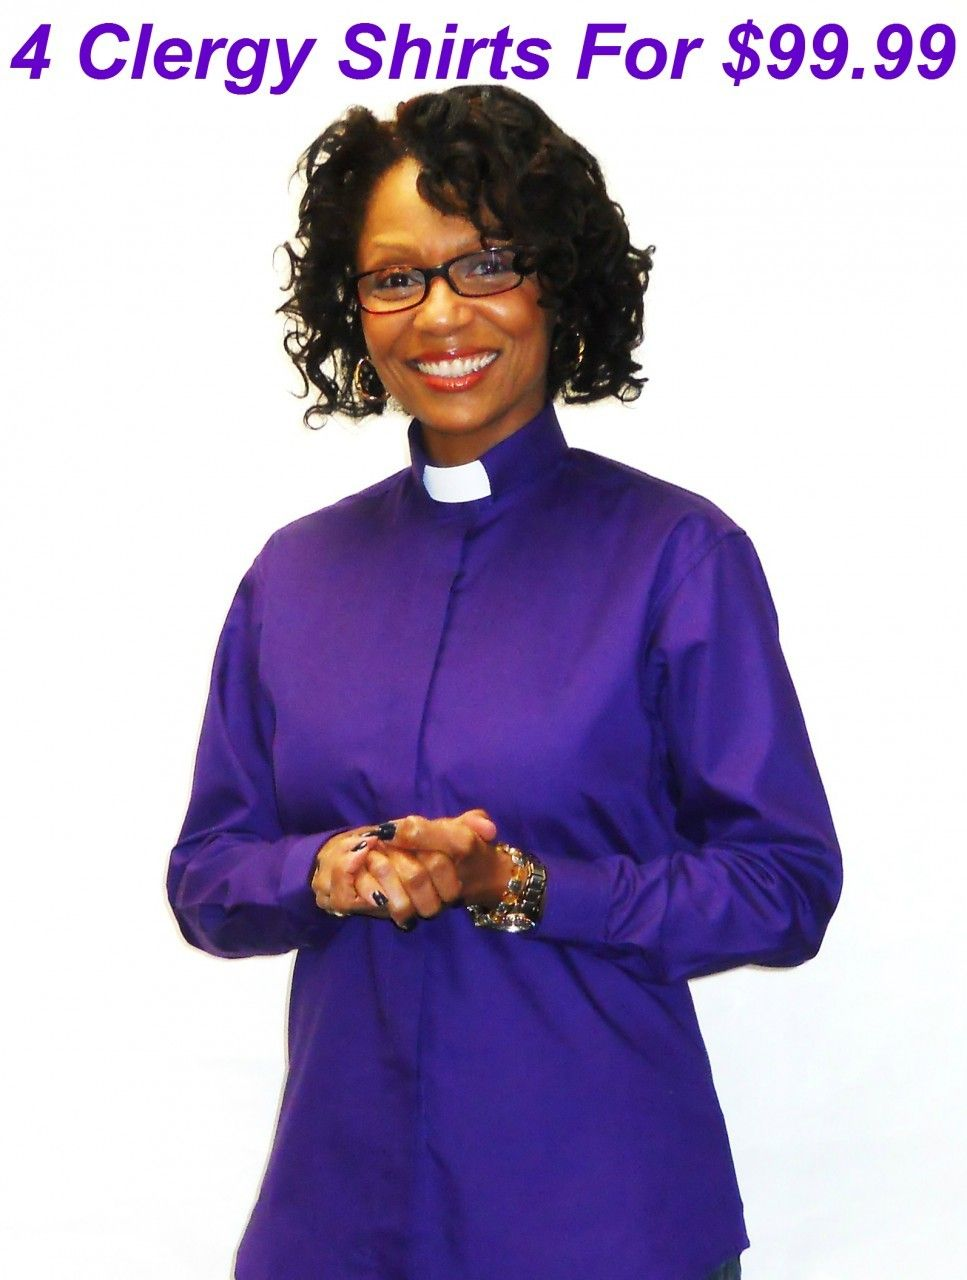 SUPER SALE  4 Women s TAB Collar Clergy Shirts For  99.99 - Divinity Clergy  Wear c8185bd9c